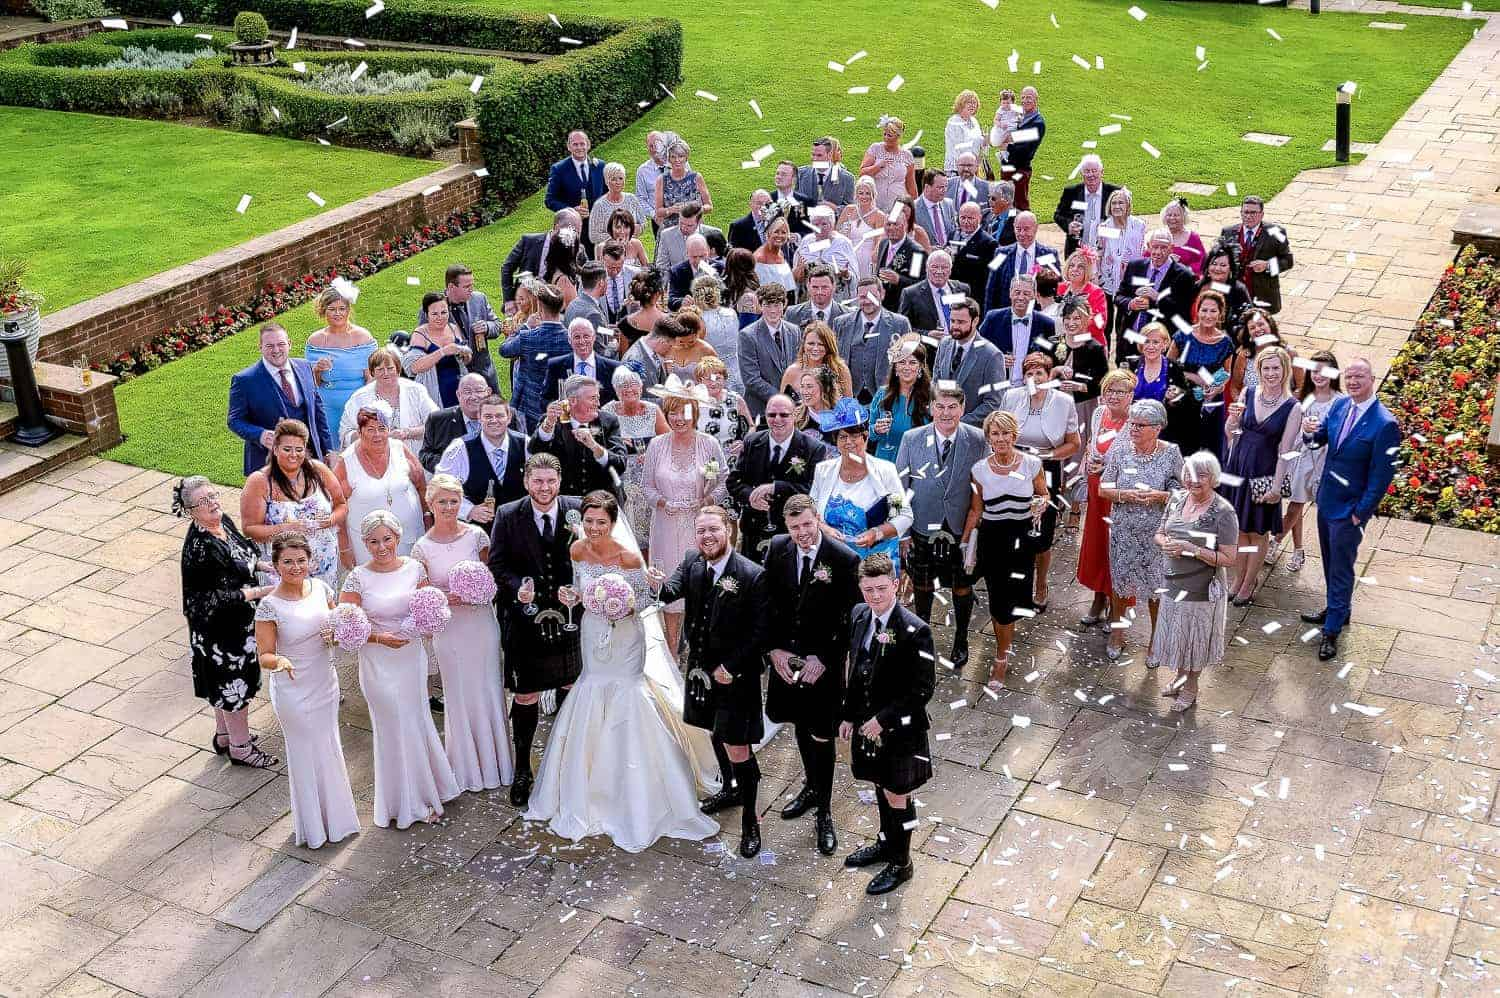 Western House Hotel Ayr Ayrshire Glasgow wedding photographer wedding photography Glasgow Edinburgh scotland